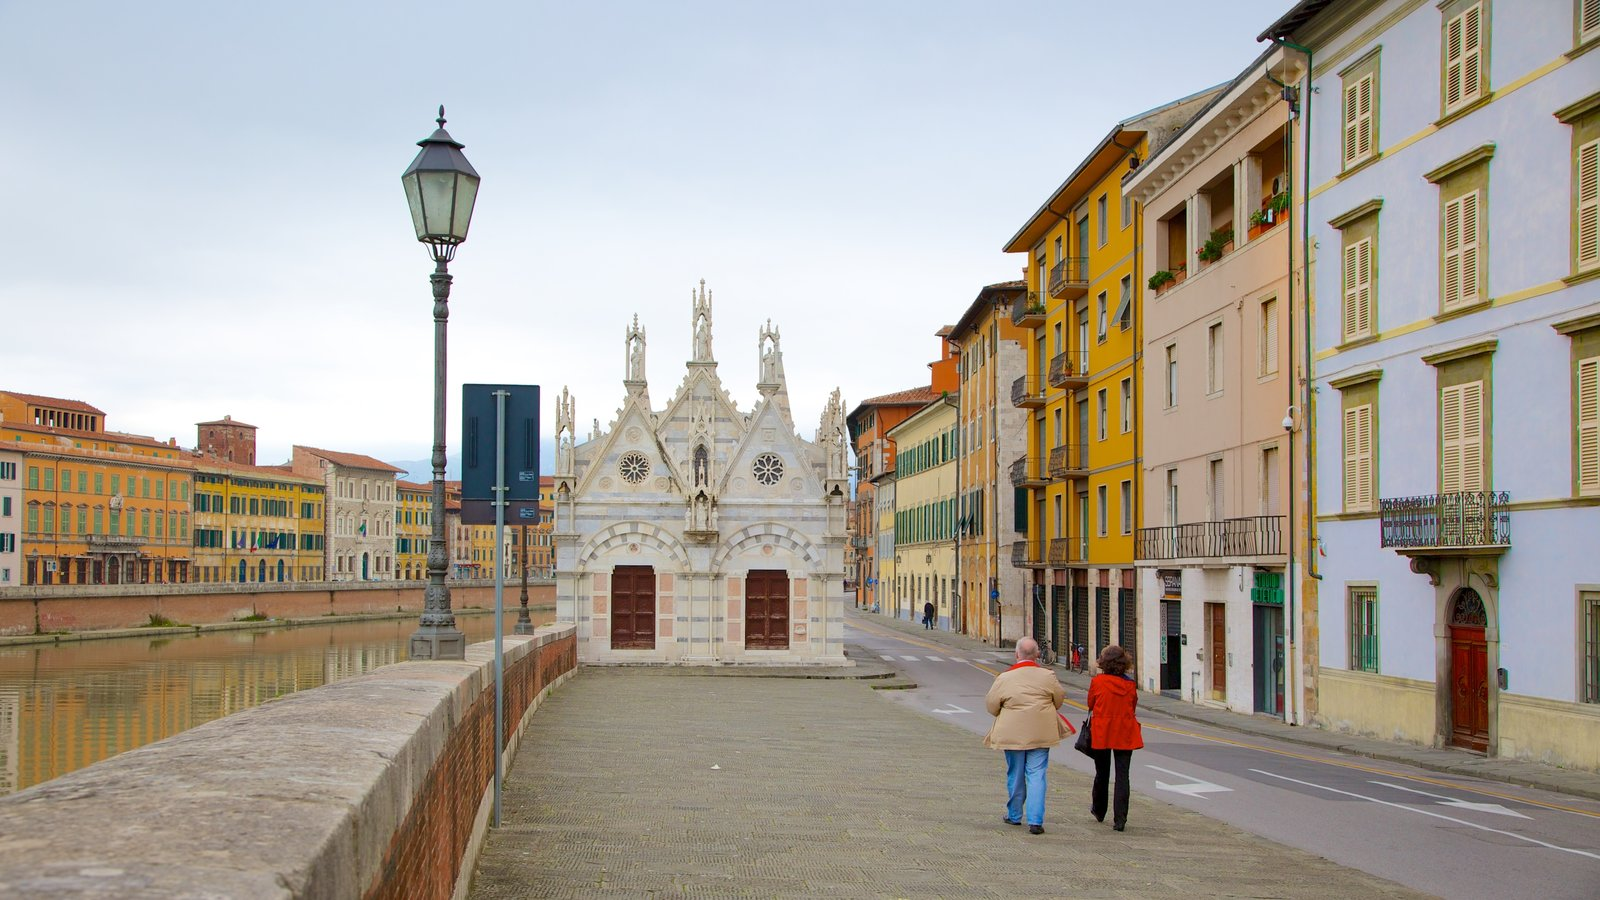 Santa Maria della Spina which includes a church or cathedral, a city and street scenes